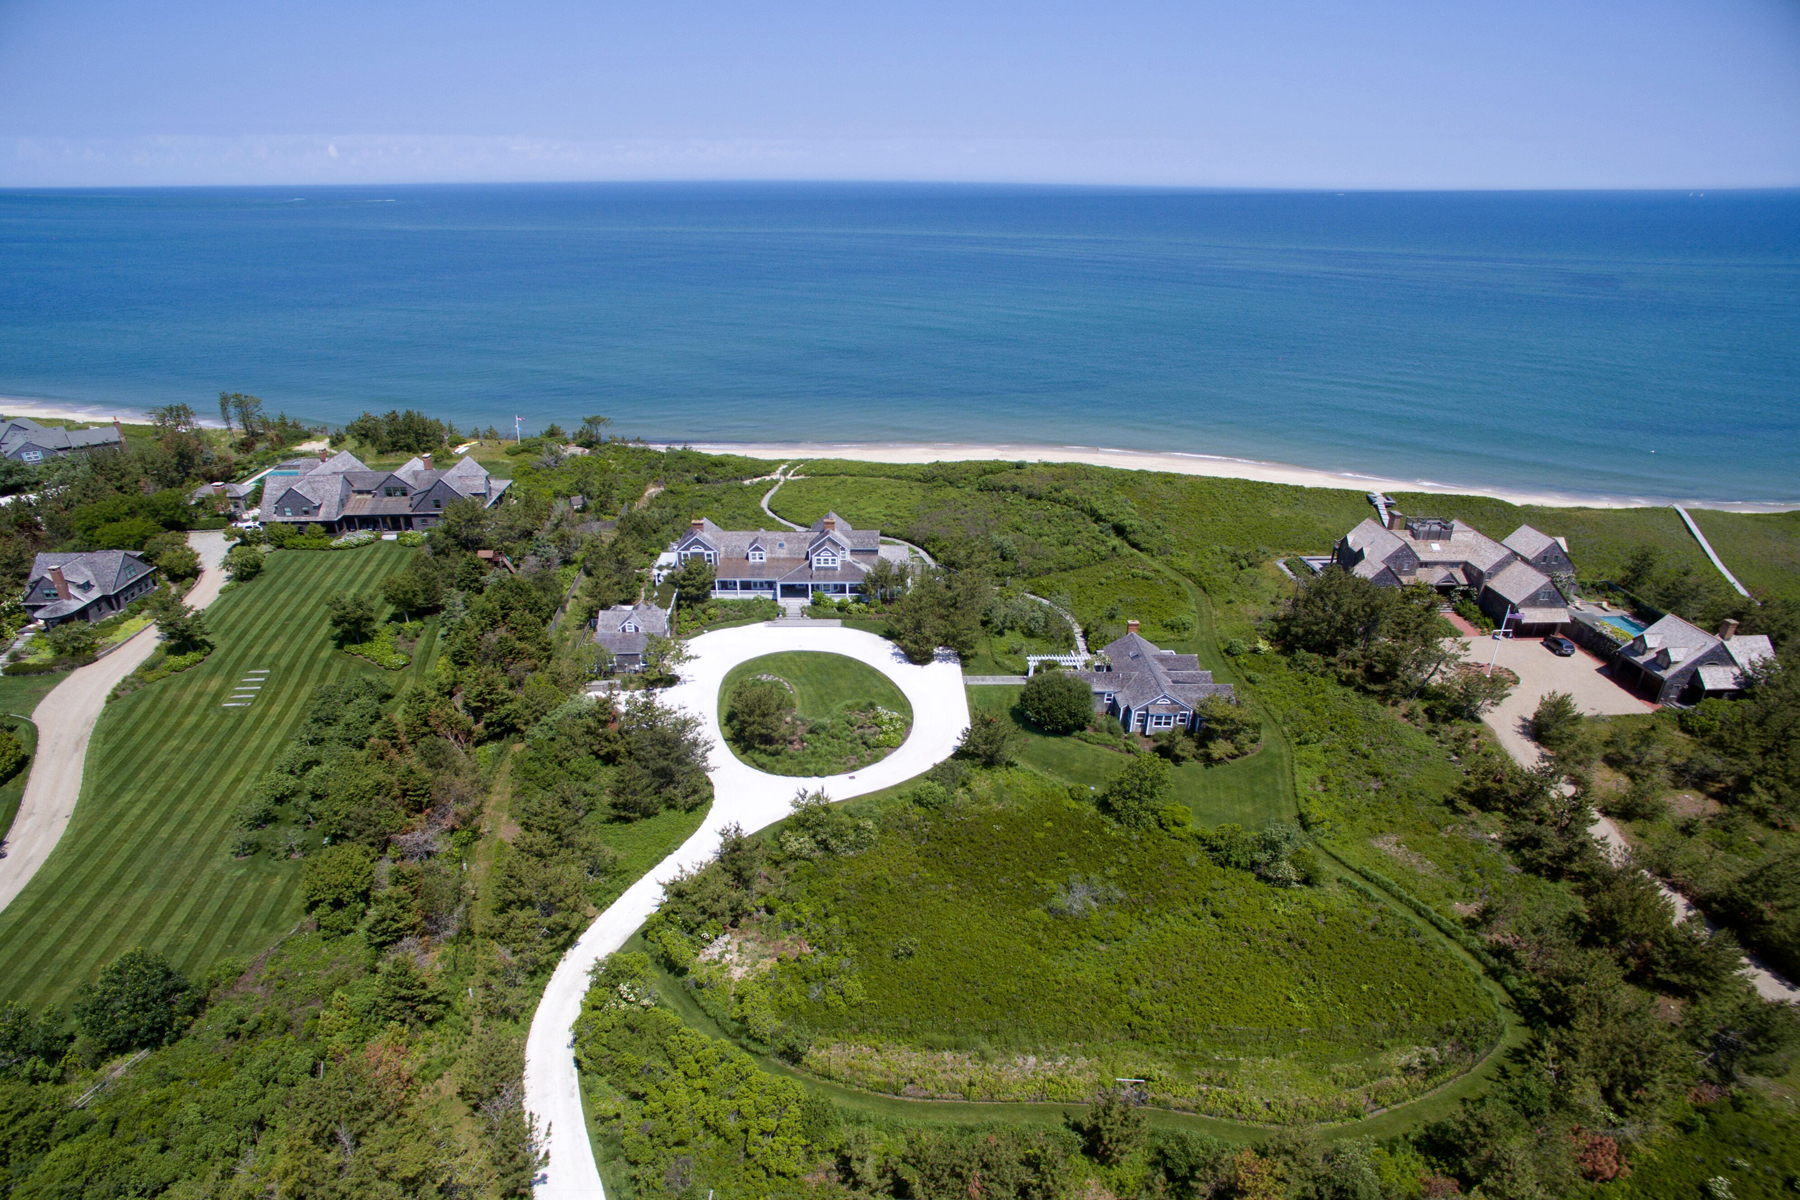 단독 가정 주택 용 매매 에 Spectacular Oceanfront Dionis! 119 Eel Point Road 119 R Eel Point Road Nantucket, 매사추세츠, 02554 미국